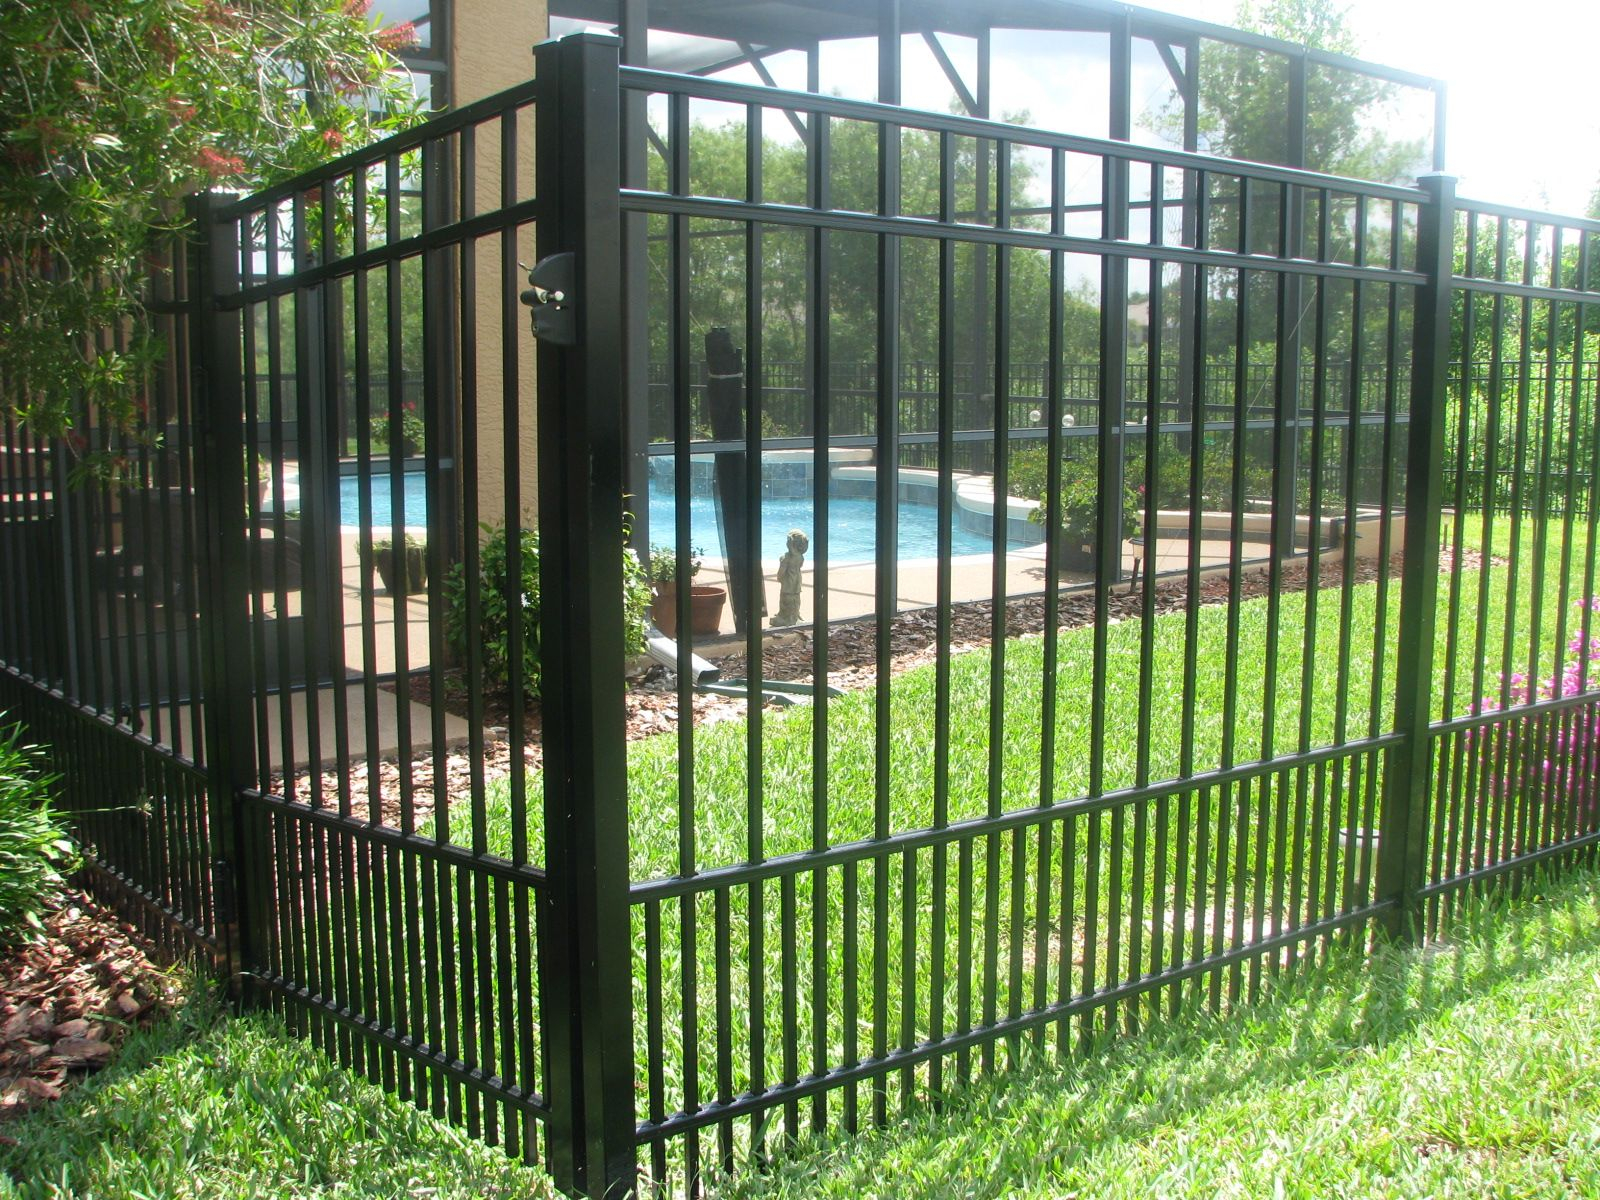 Mossy Oak Fence | Dream Home in 2019 | Aluminum fence, Fence